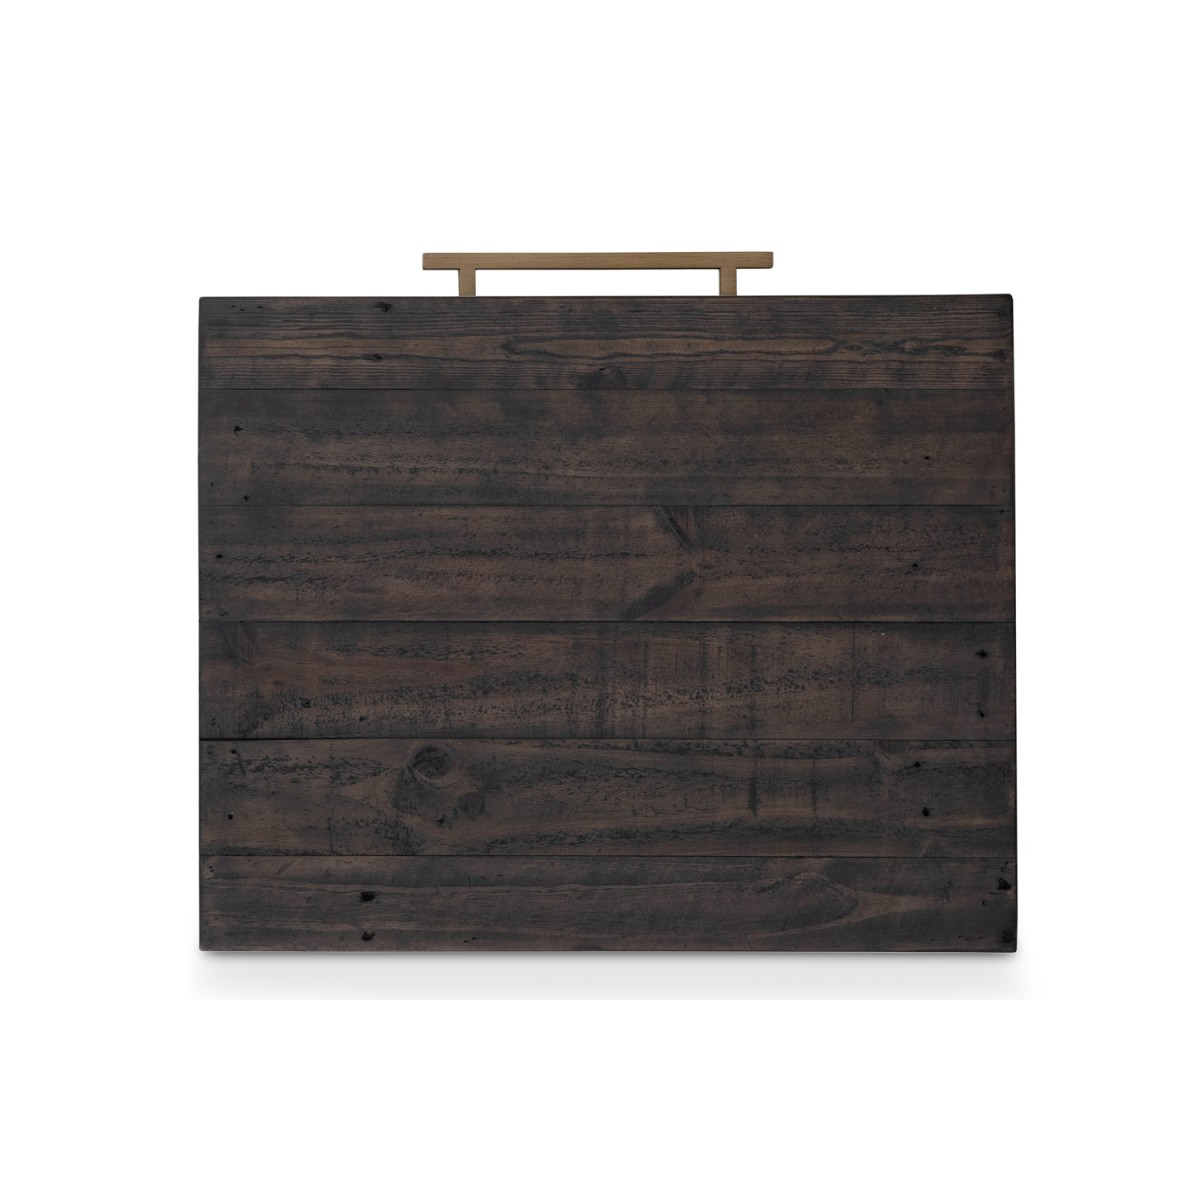 Table de chevet 1 Tiroir Bois Marron 55x45x65cm